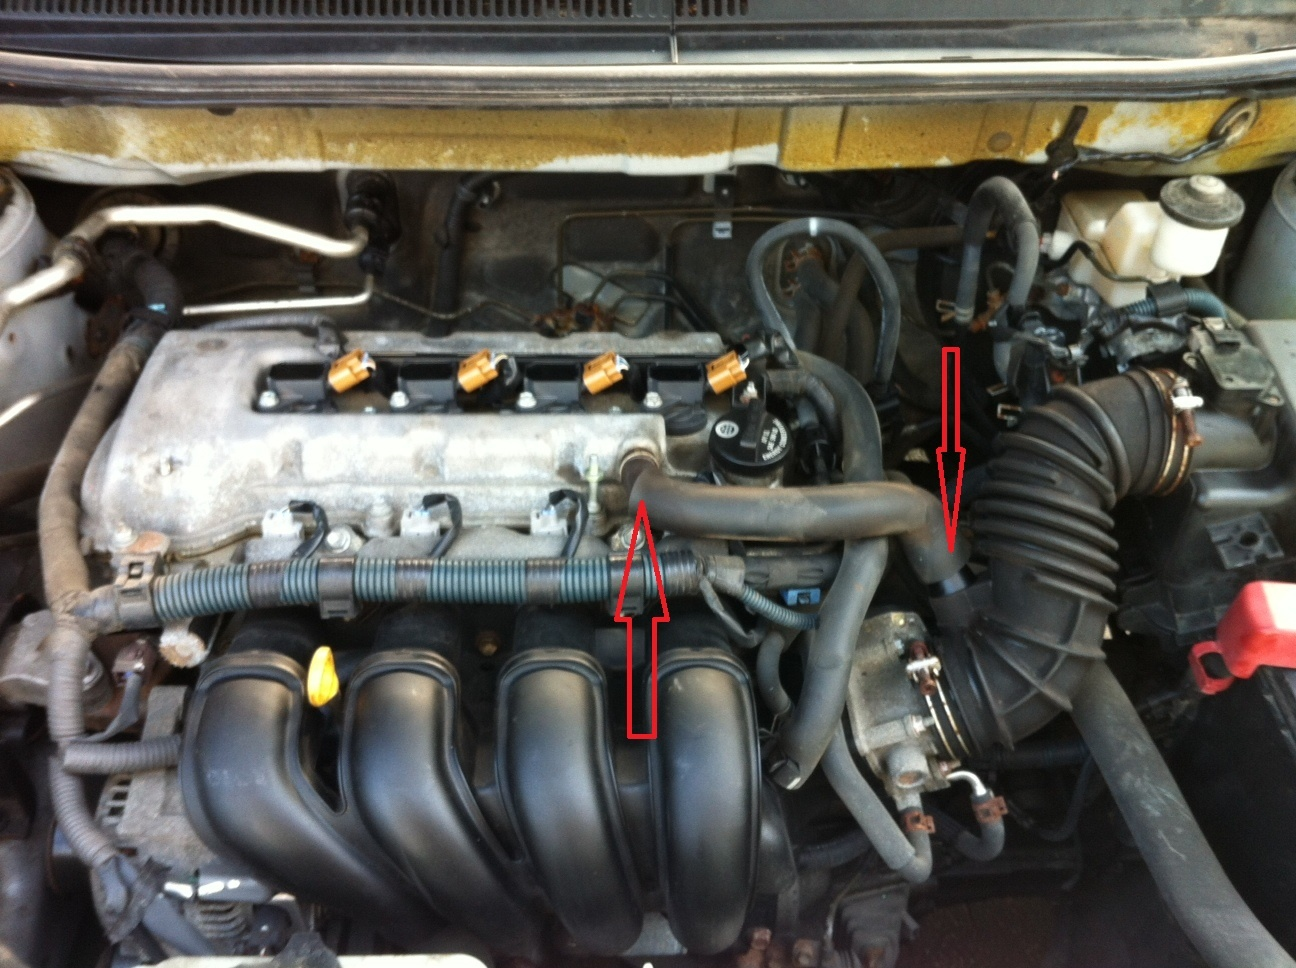 2010 Toyota Matrix Engine Diagram Trusted Wiring Corolla Questions What Is This Tube On My 2006 Cargurus 2012 Camry